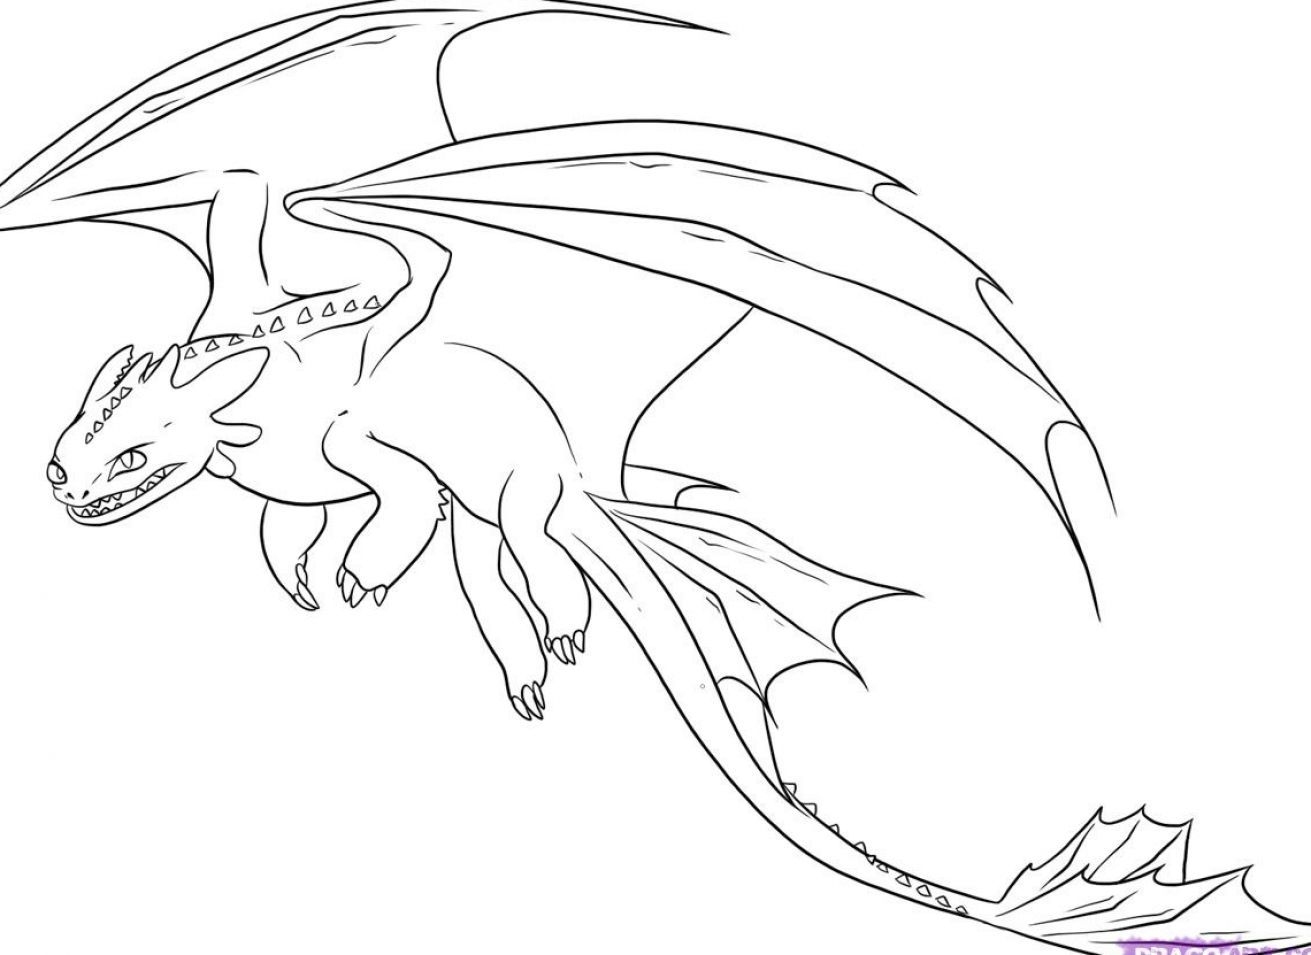 d is for dragon coloring page pin on stuff is dragon page d coloring for